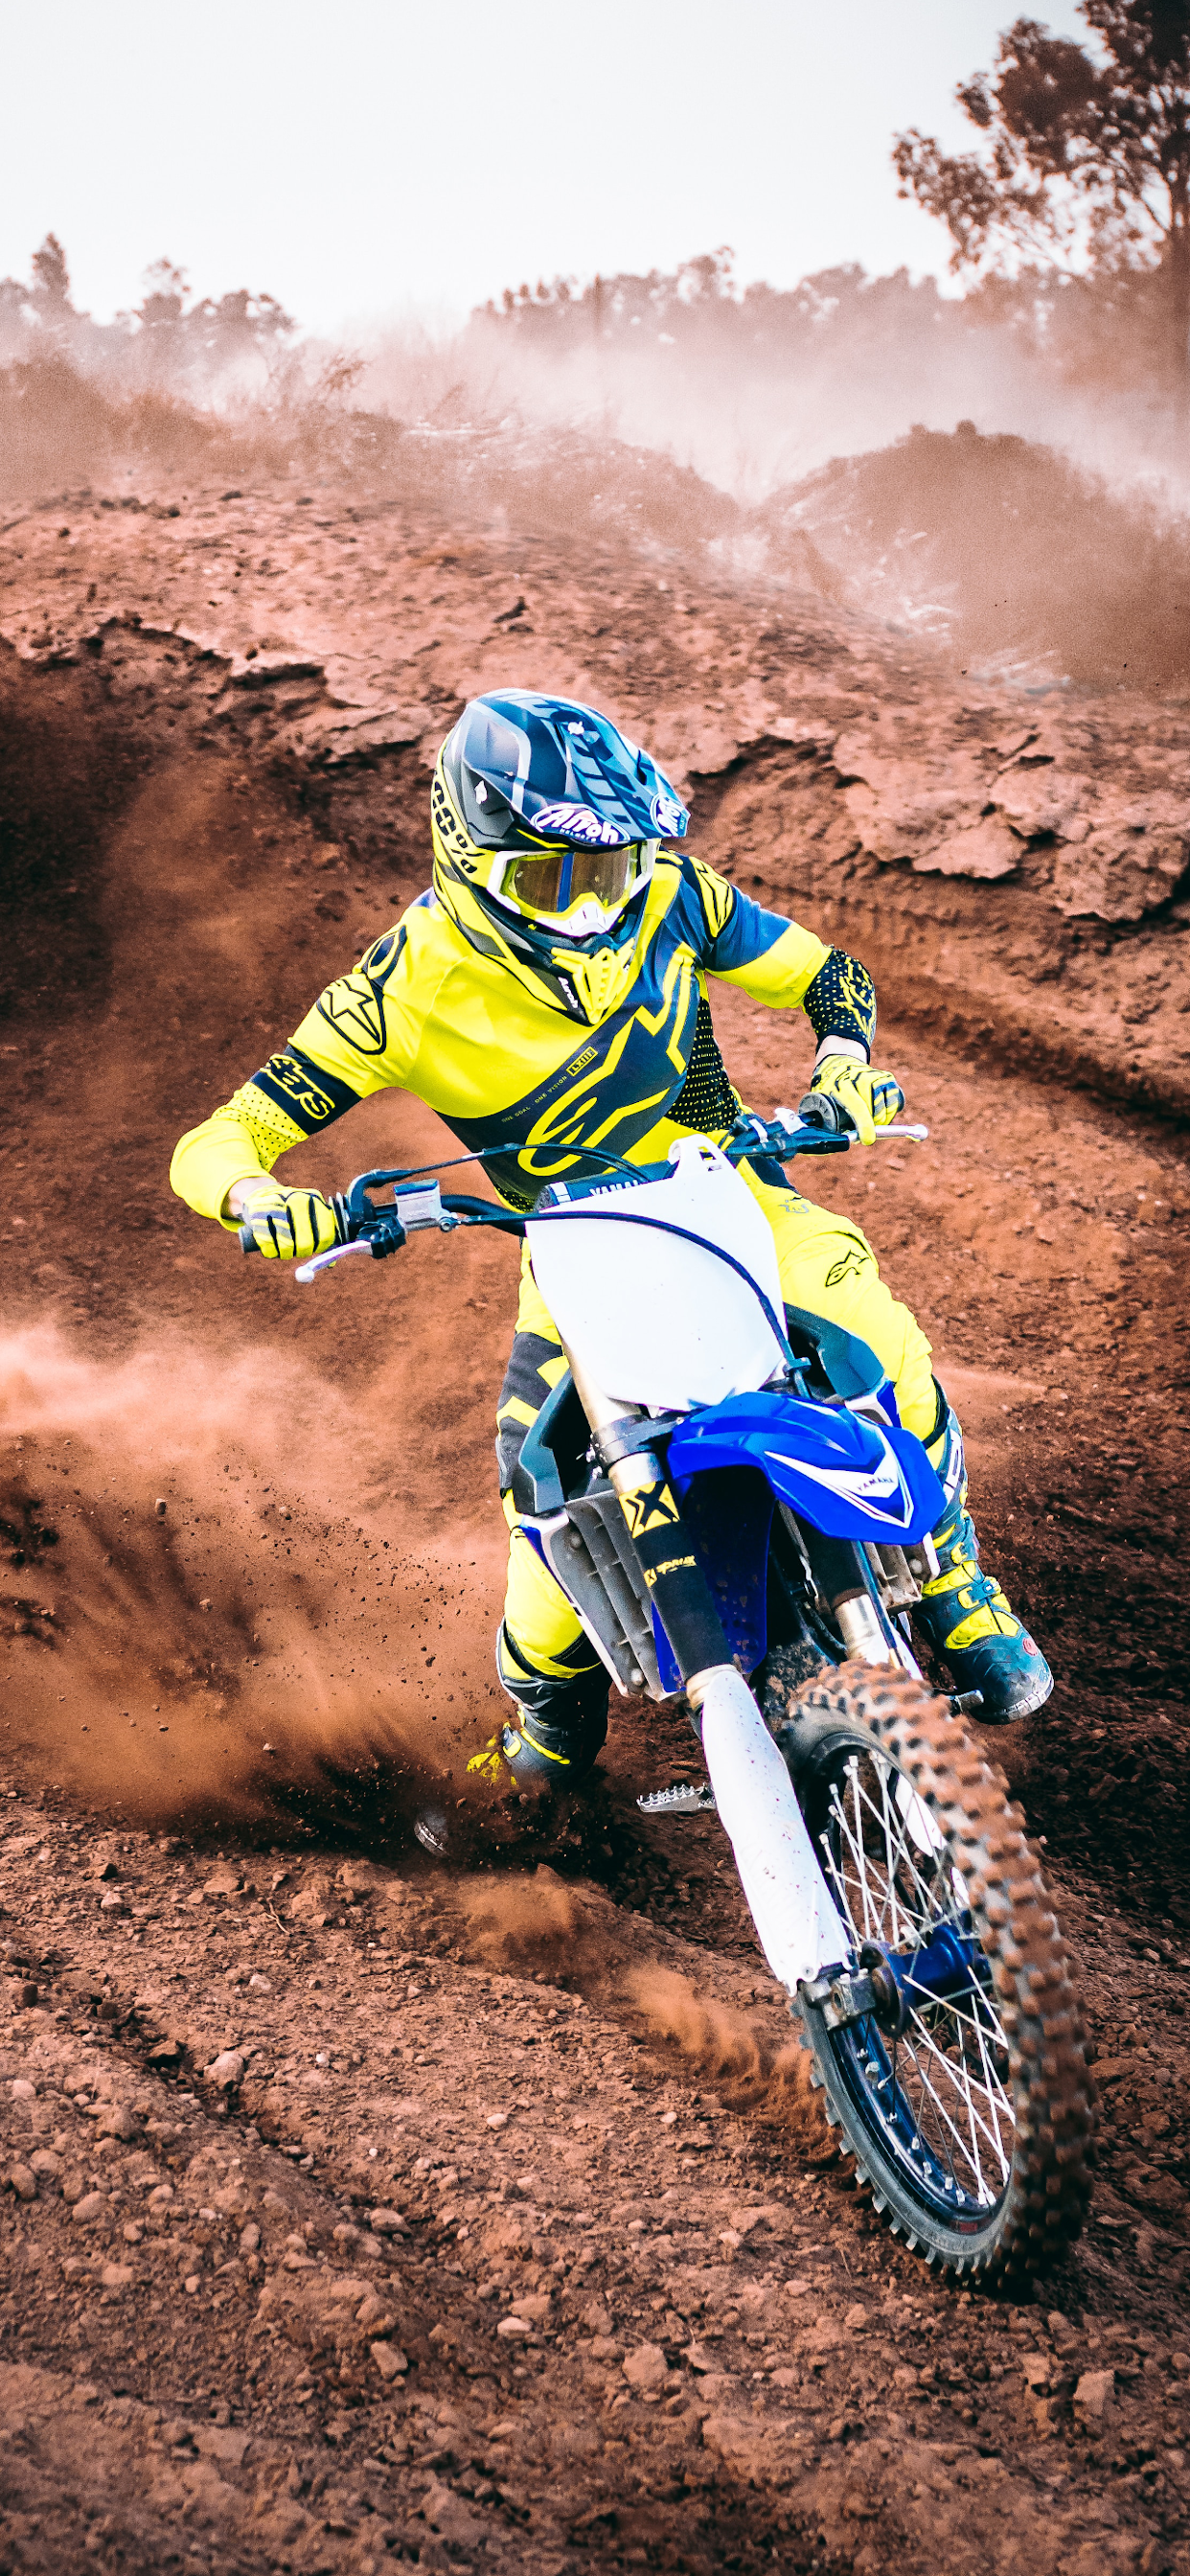 iPhone wallpapers motocross axo Motocross